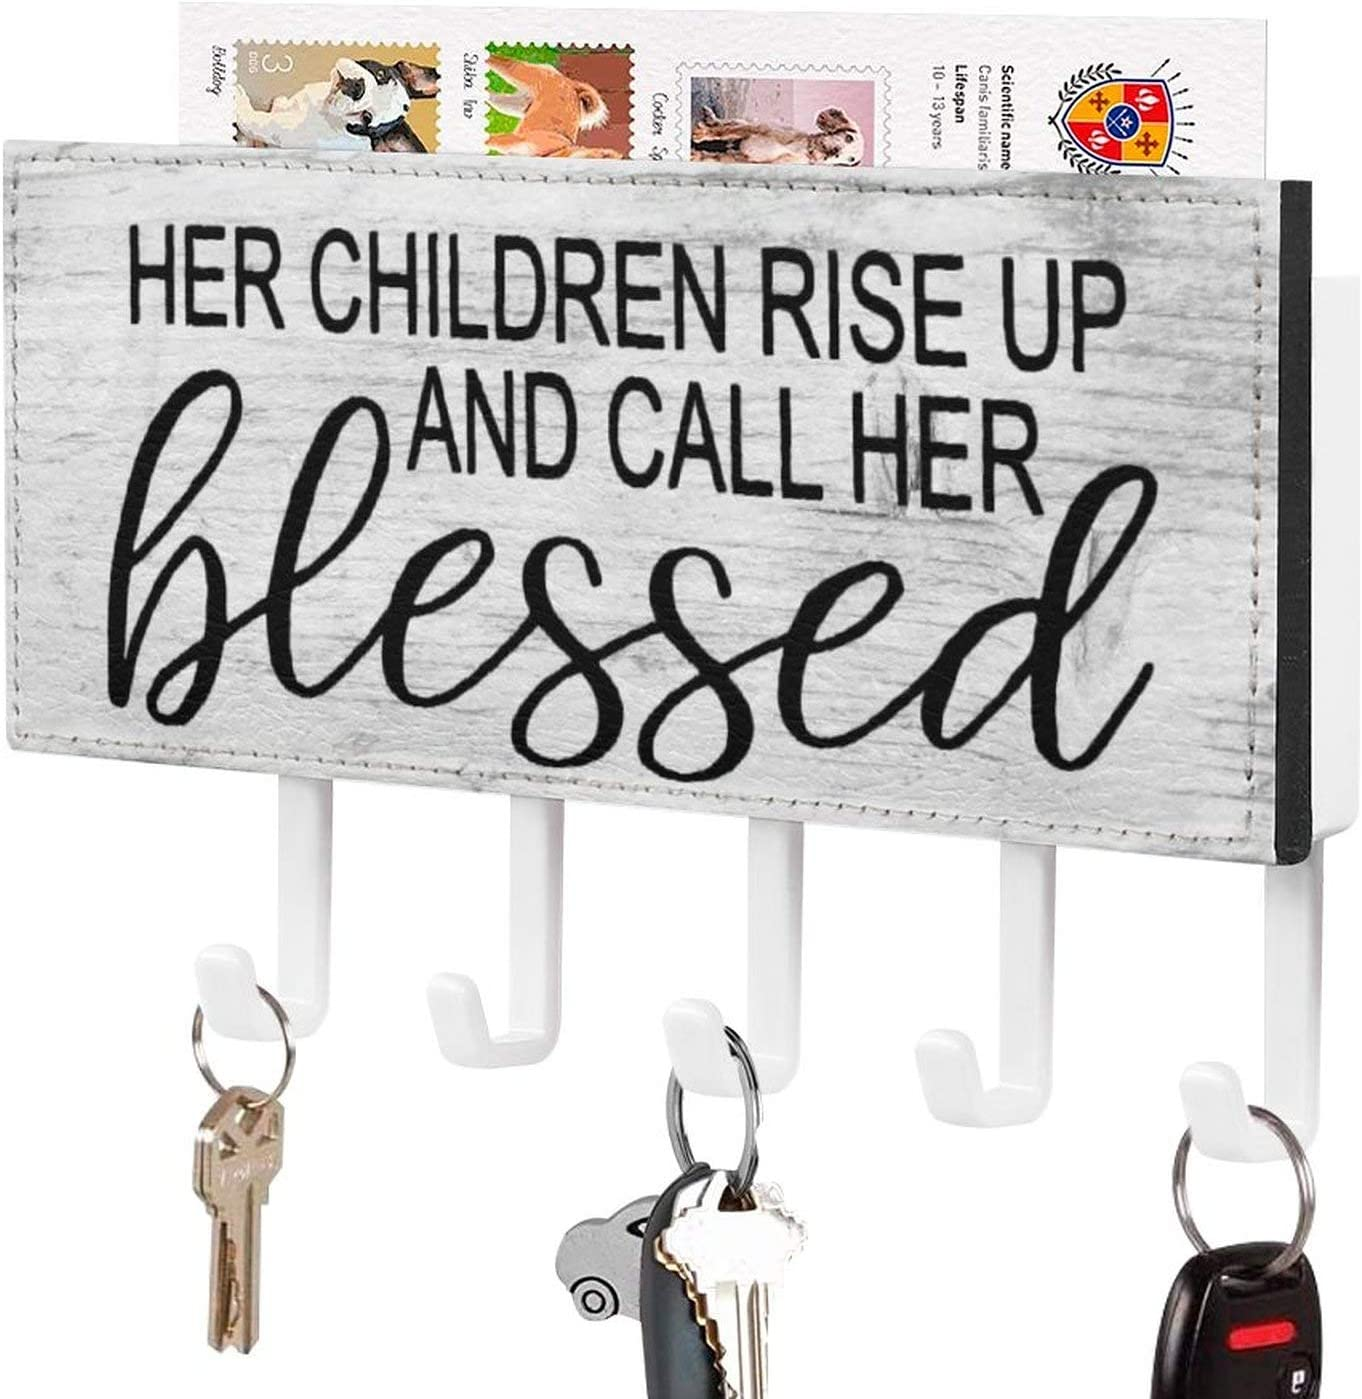 Her Children Rise Up and Call Her Blessed Key Holder for Wall,Mother's Day Gift Mail Holder and Key Rack for Entryway, Farmhouse Home Decor Key Hooks, Rustic Key Hangers with 5 Hooks